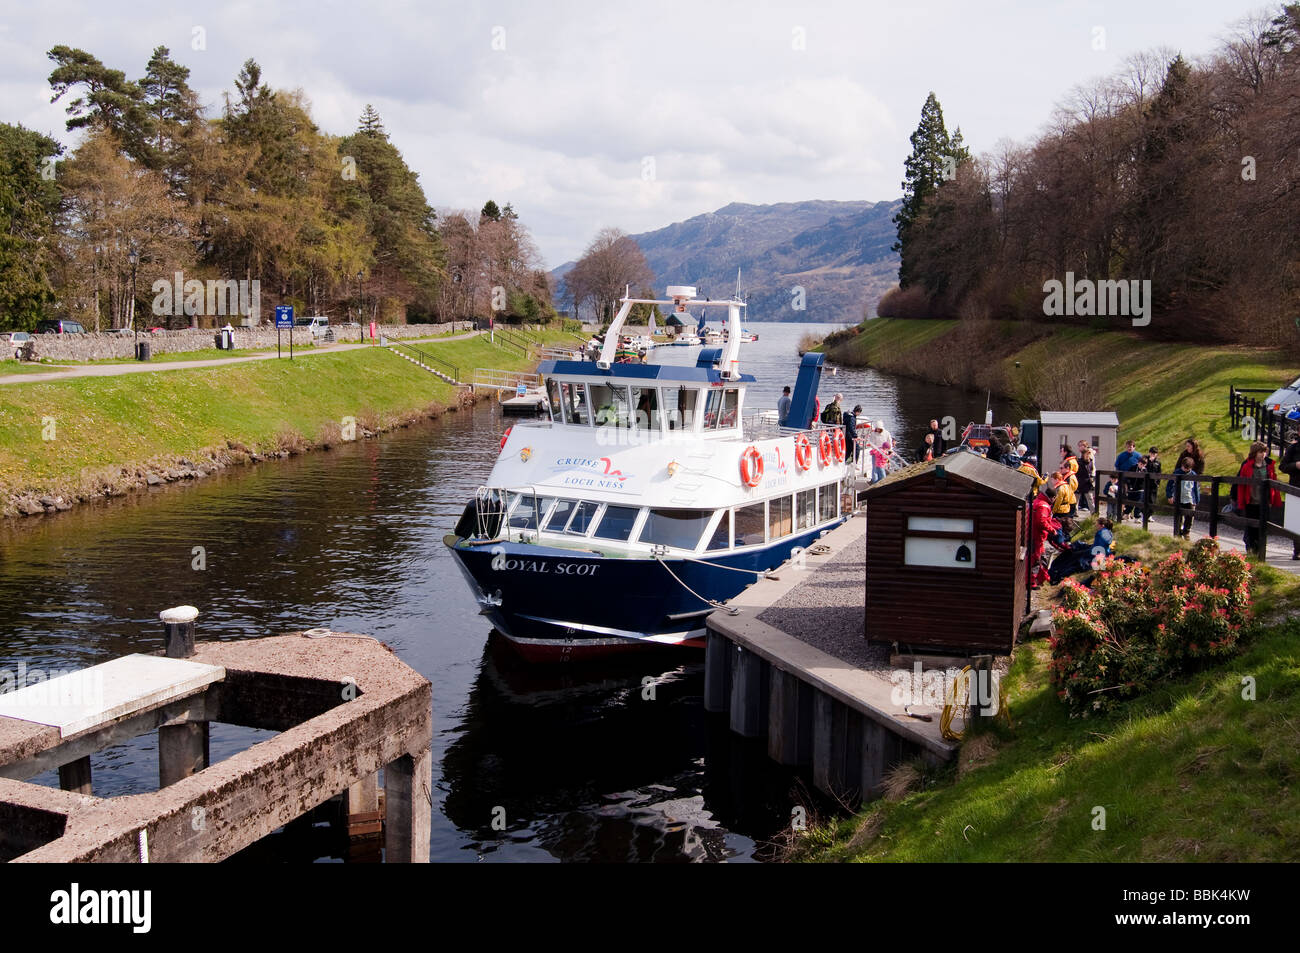 Royal Scot Loch Ness Cruise Boat - Stock Image